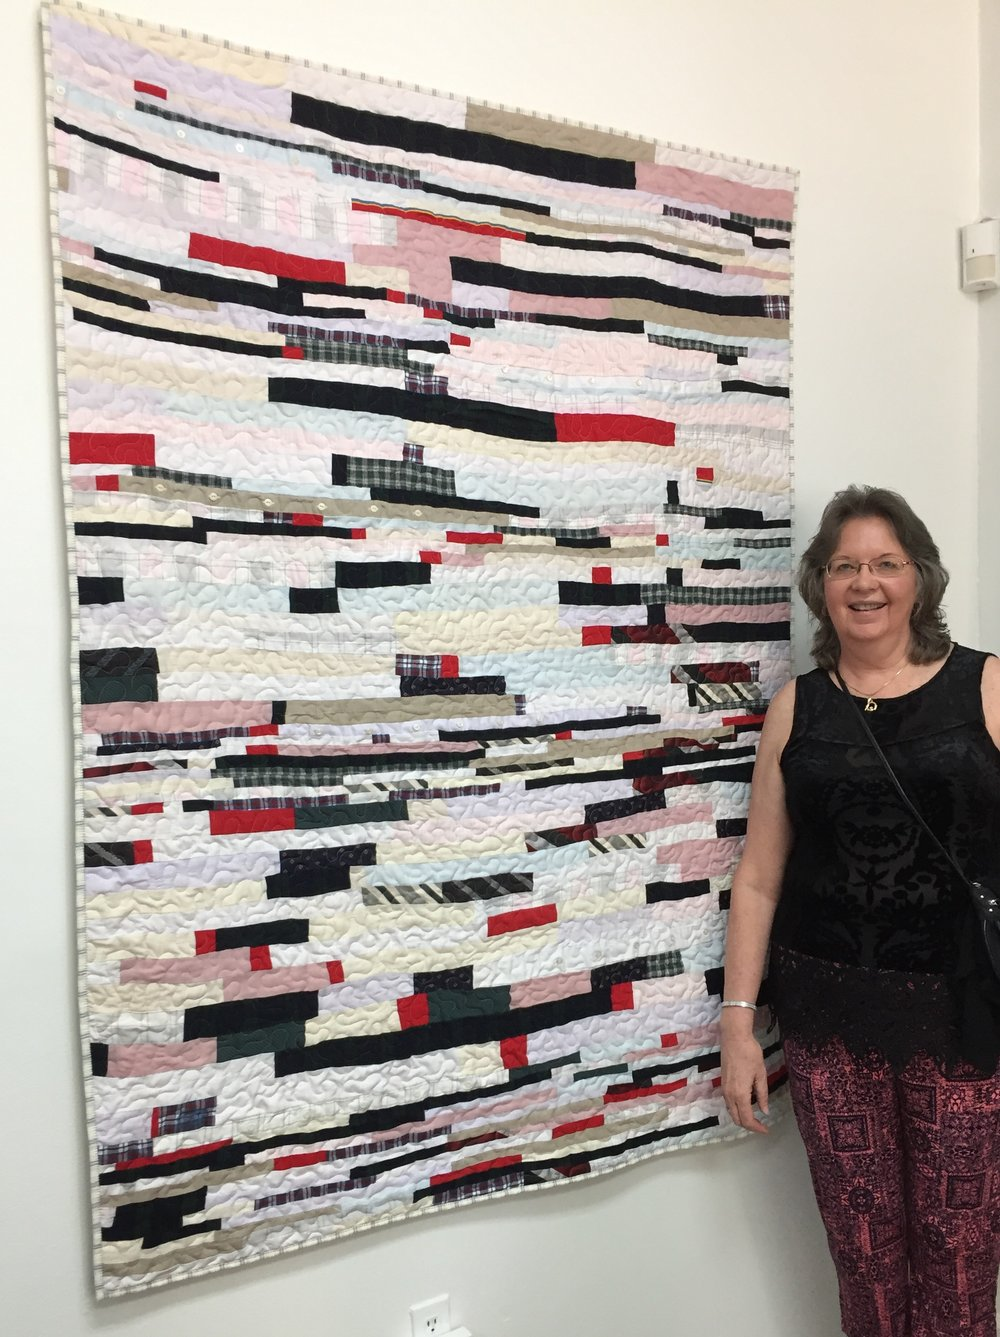 FRAN: Make Do Memory Quilt  with Artist Maureen Drudi